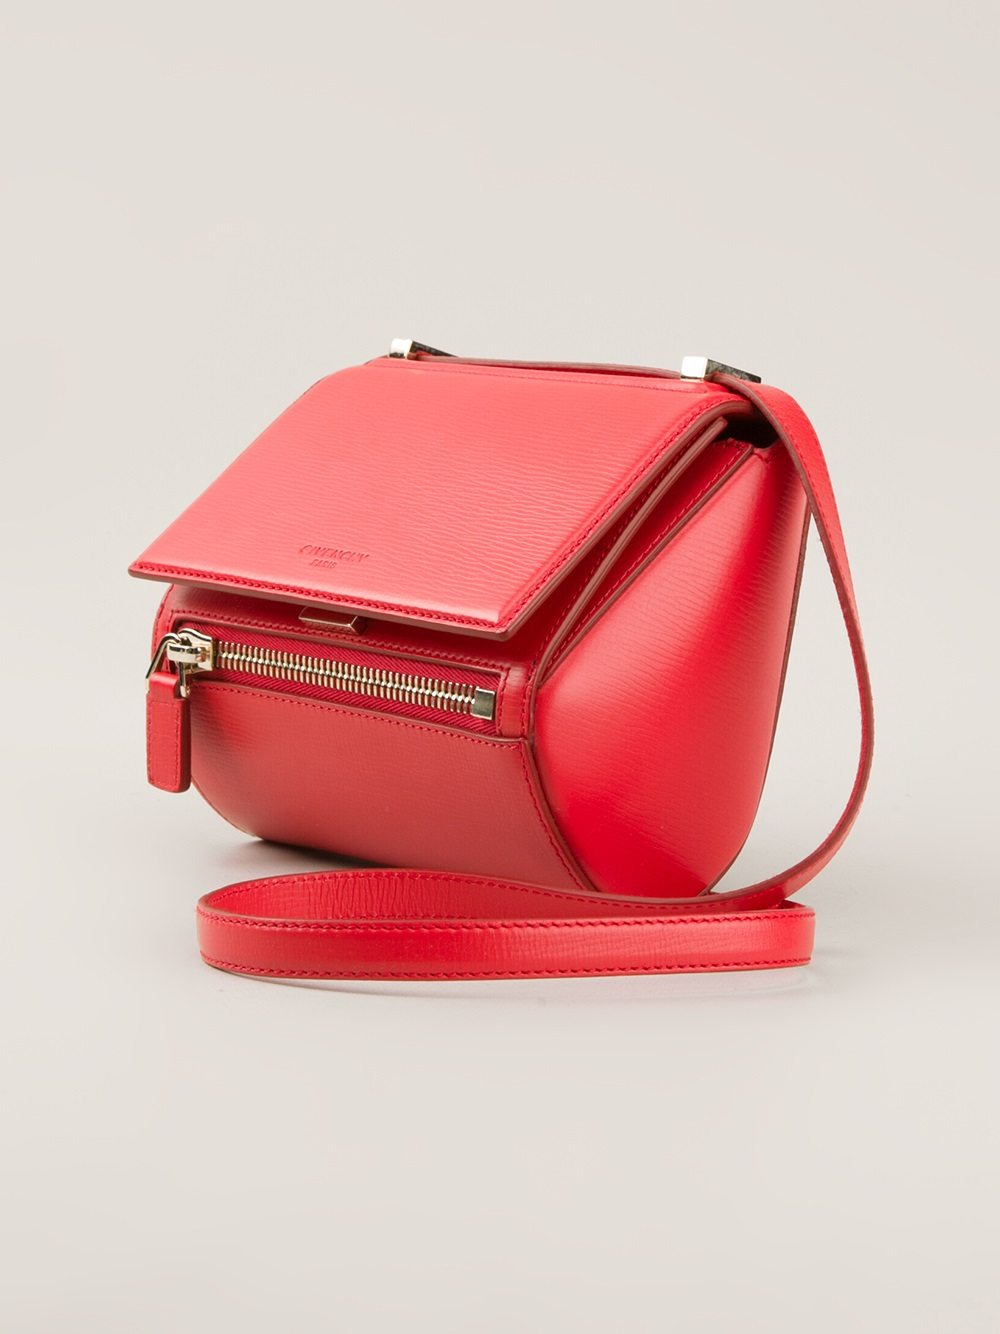 9acbe477cf1 Gallery. Previously sold at: Farfetch · Women's Box Bags Women's Givenchy  Pandora